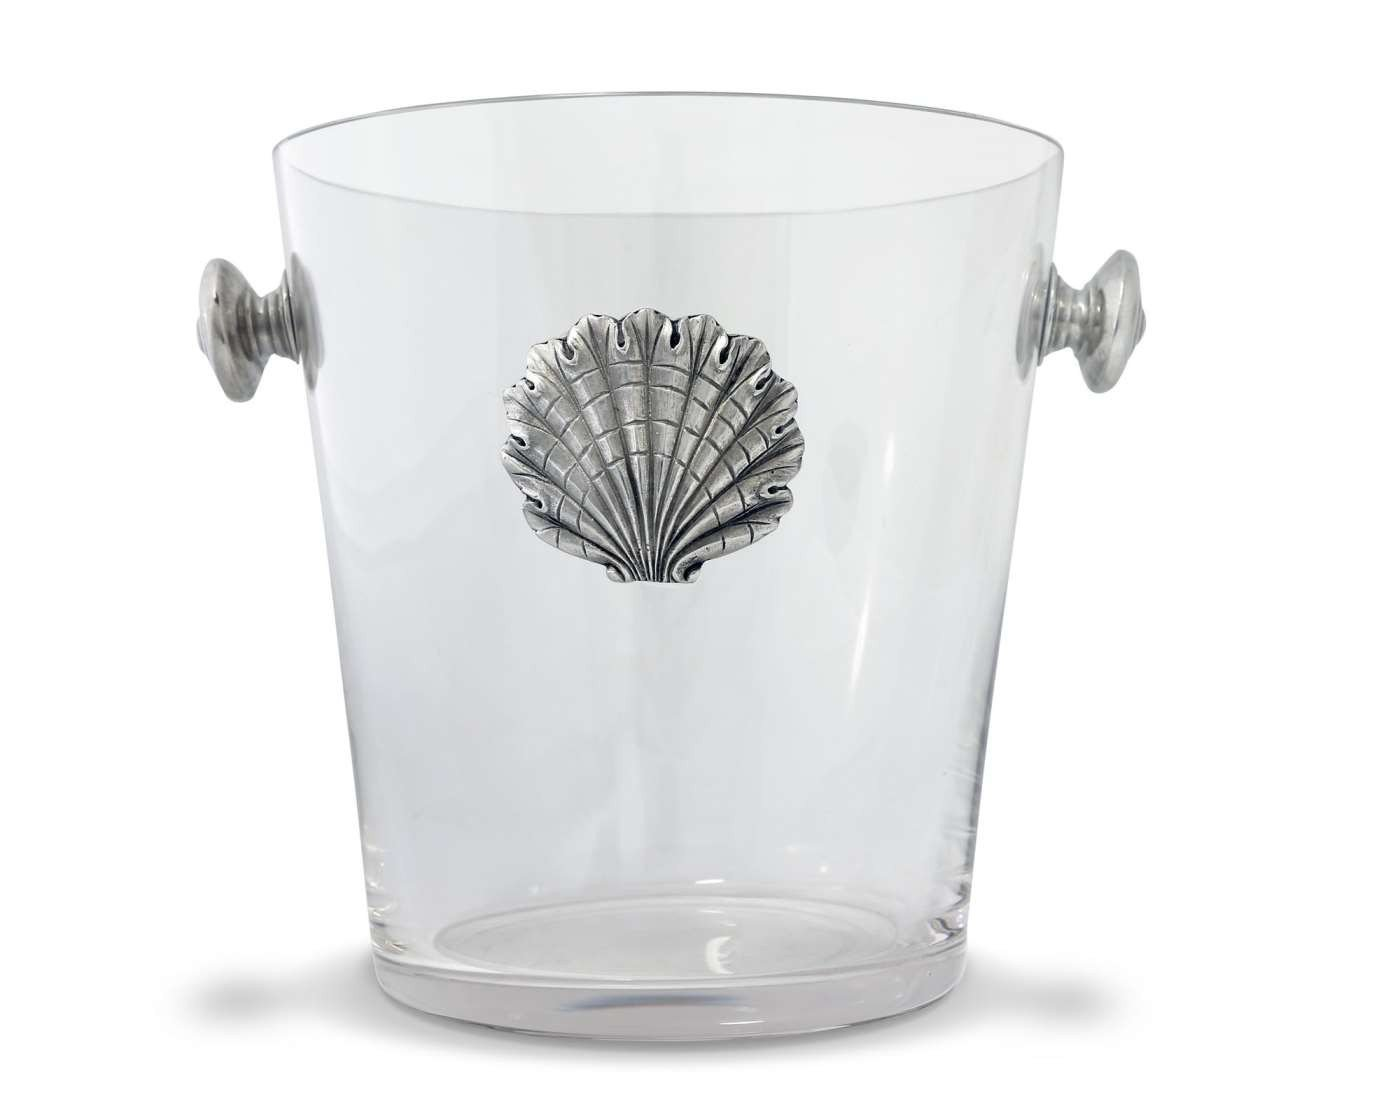 Vagabond House Glass Ice / Wine / Champagne Bucket with Pewter Shell Medallion